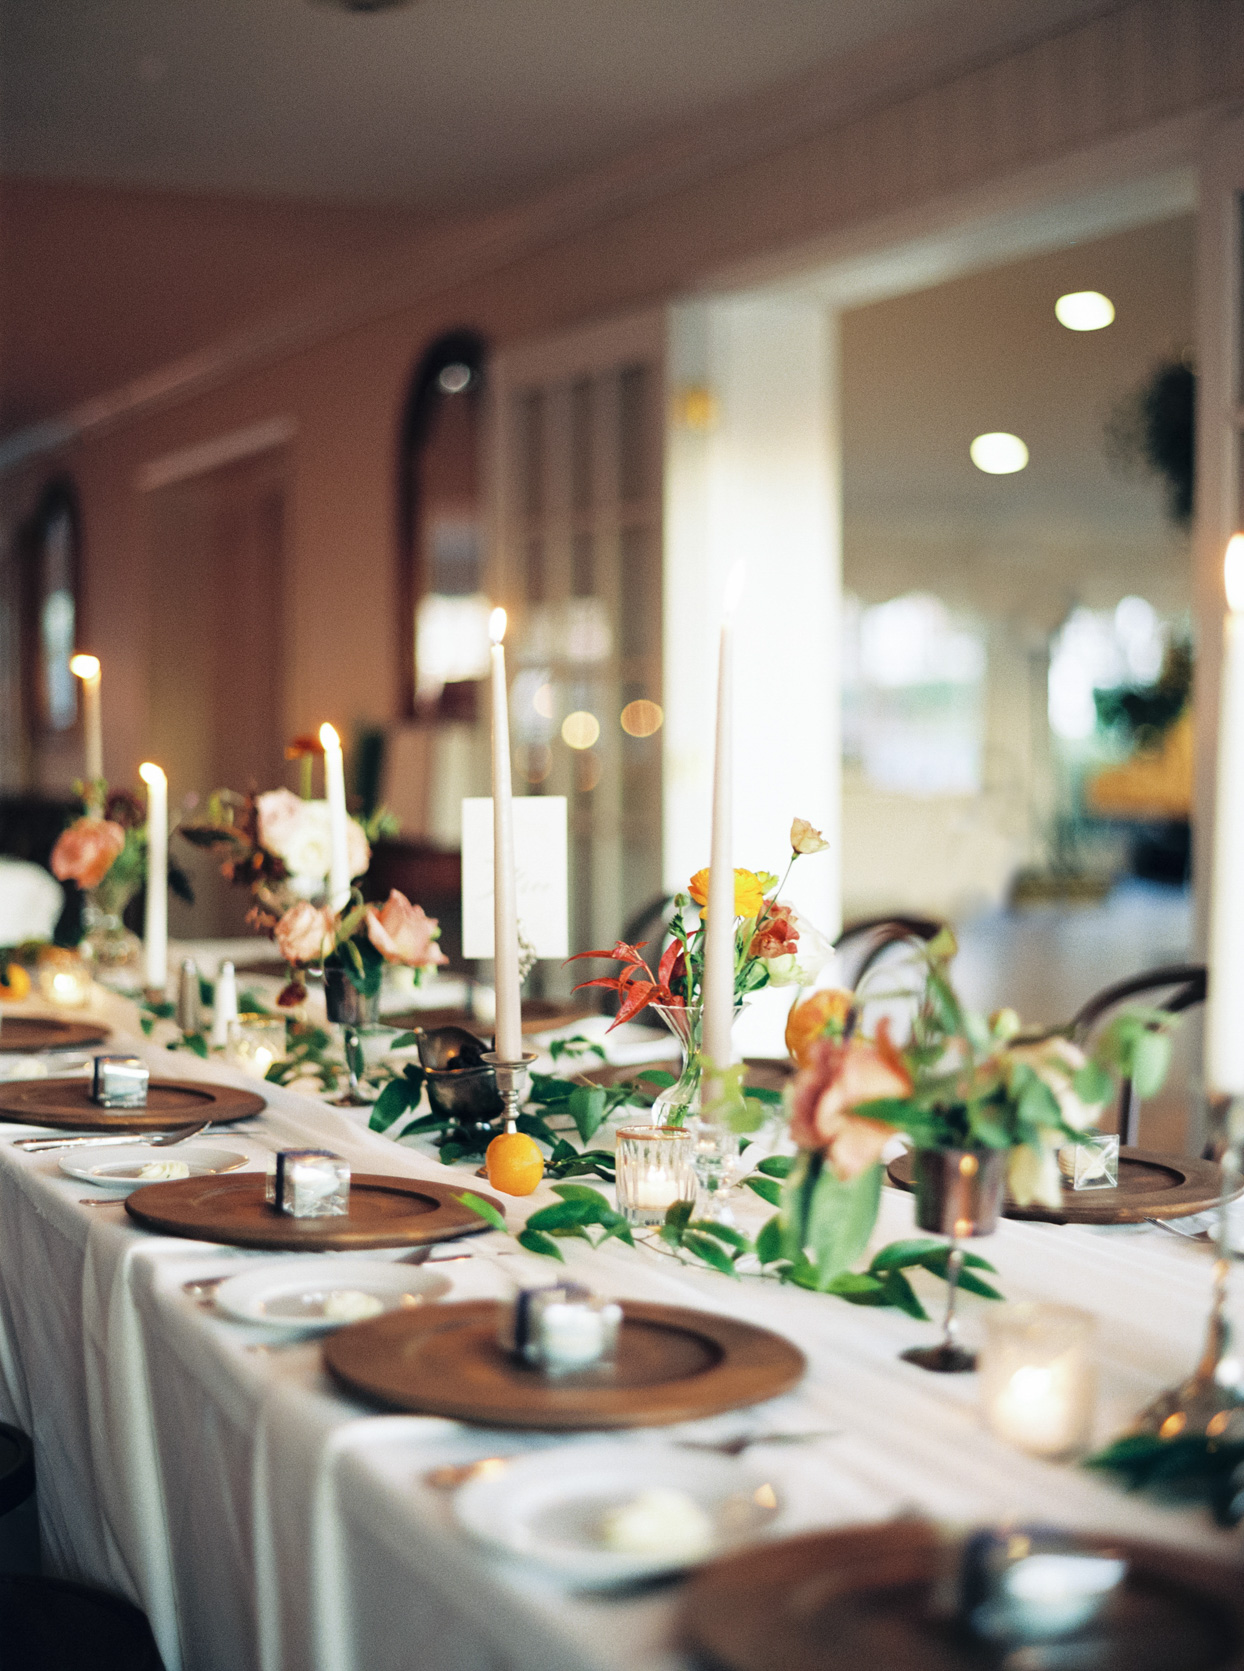 elegant wedding table settings with candles, flowers, citrus, and wooden chargers